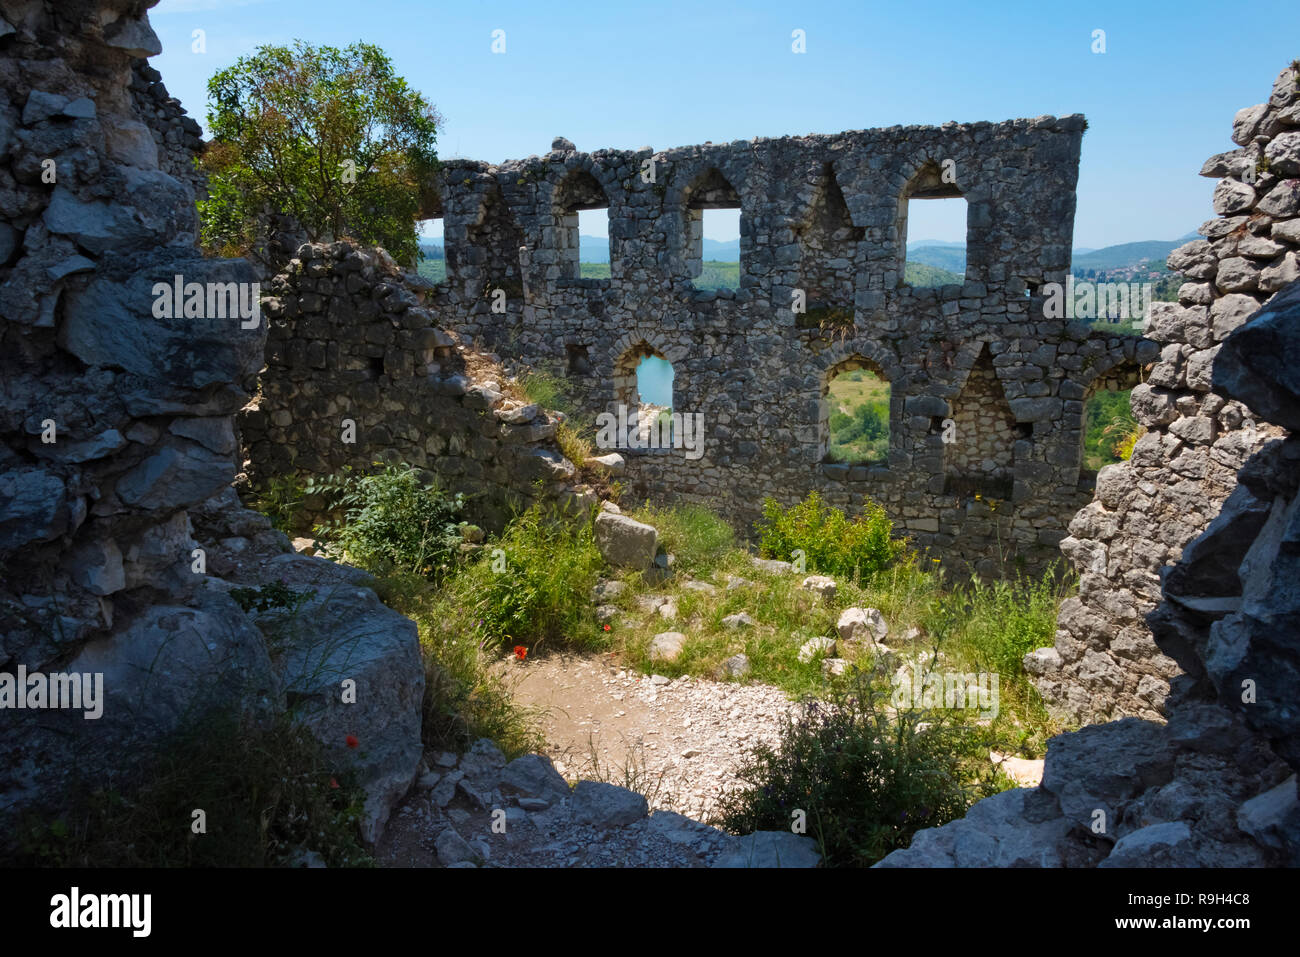 Old fortress, Pocitelj, Bosnia and Herzegovina - Stock Image